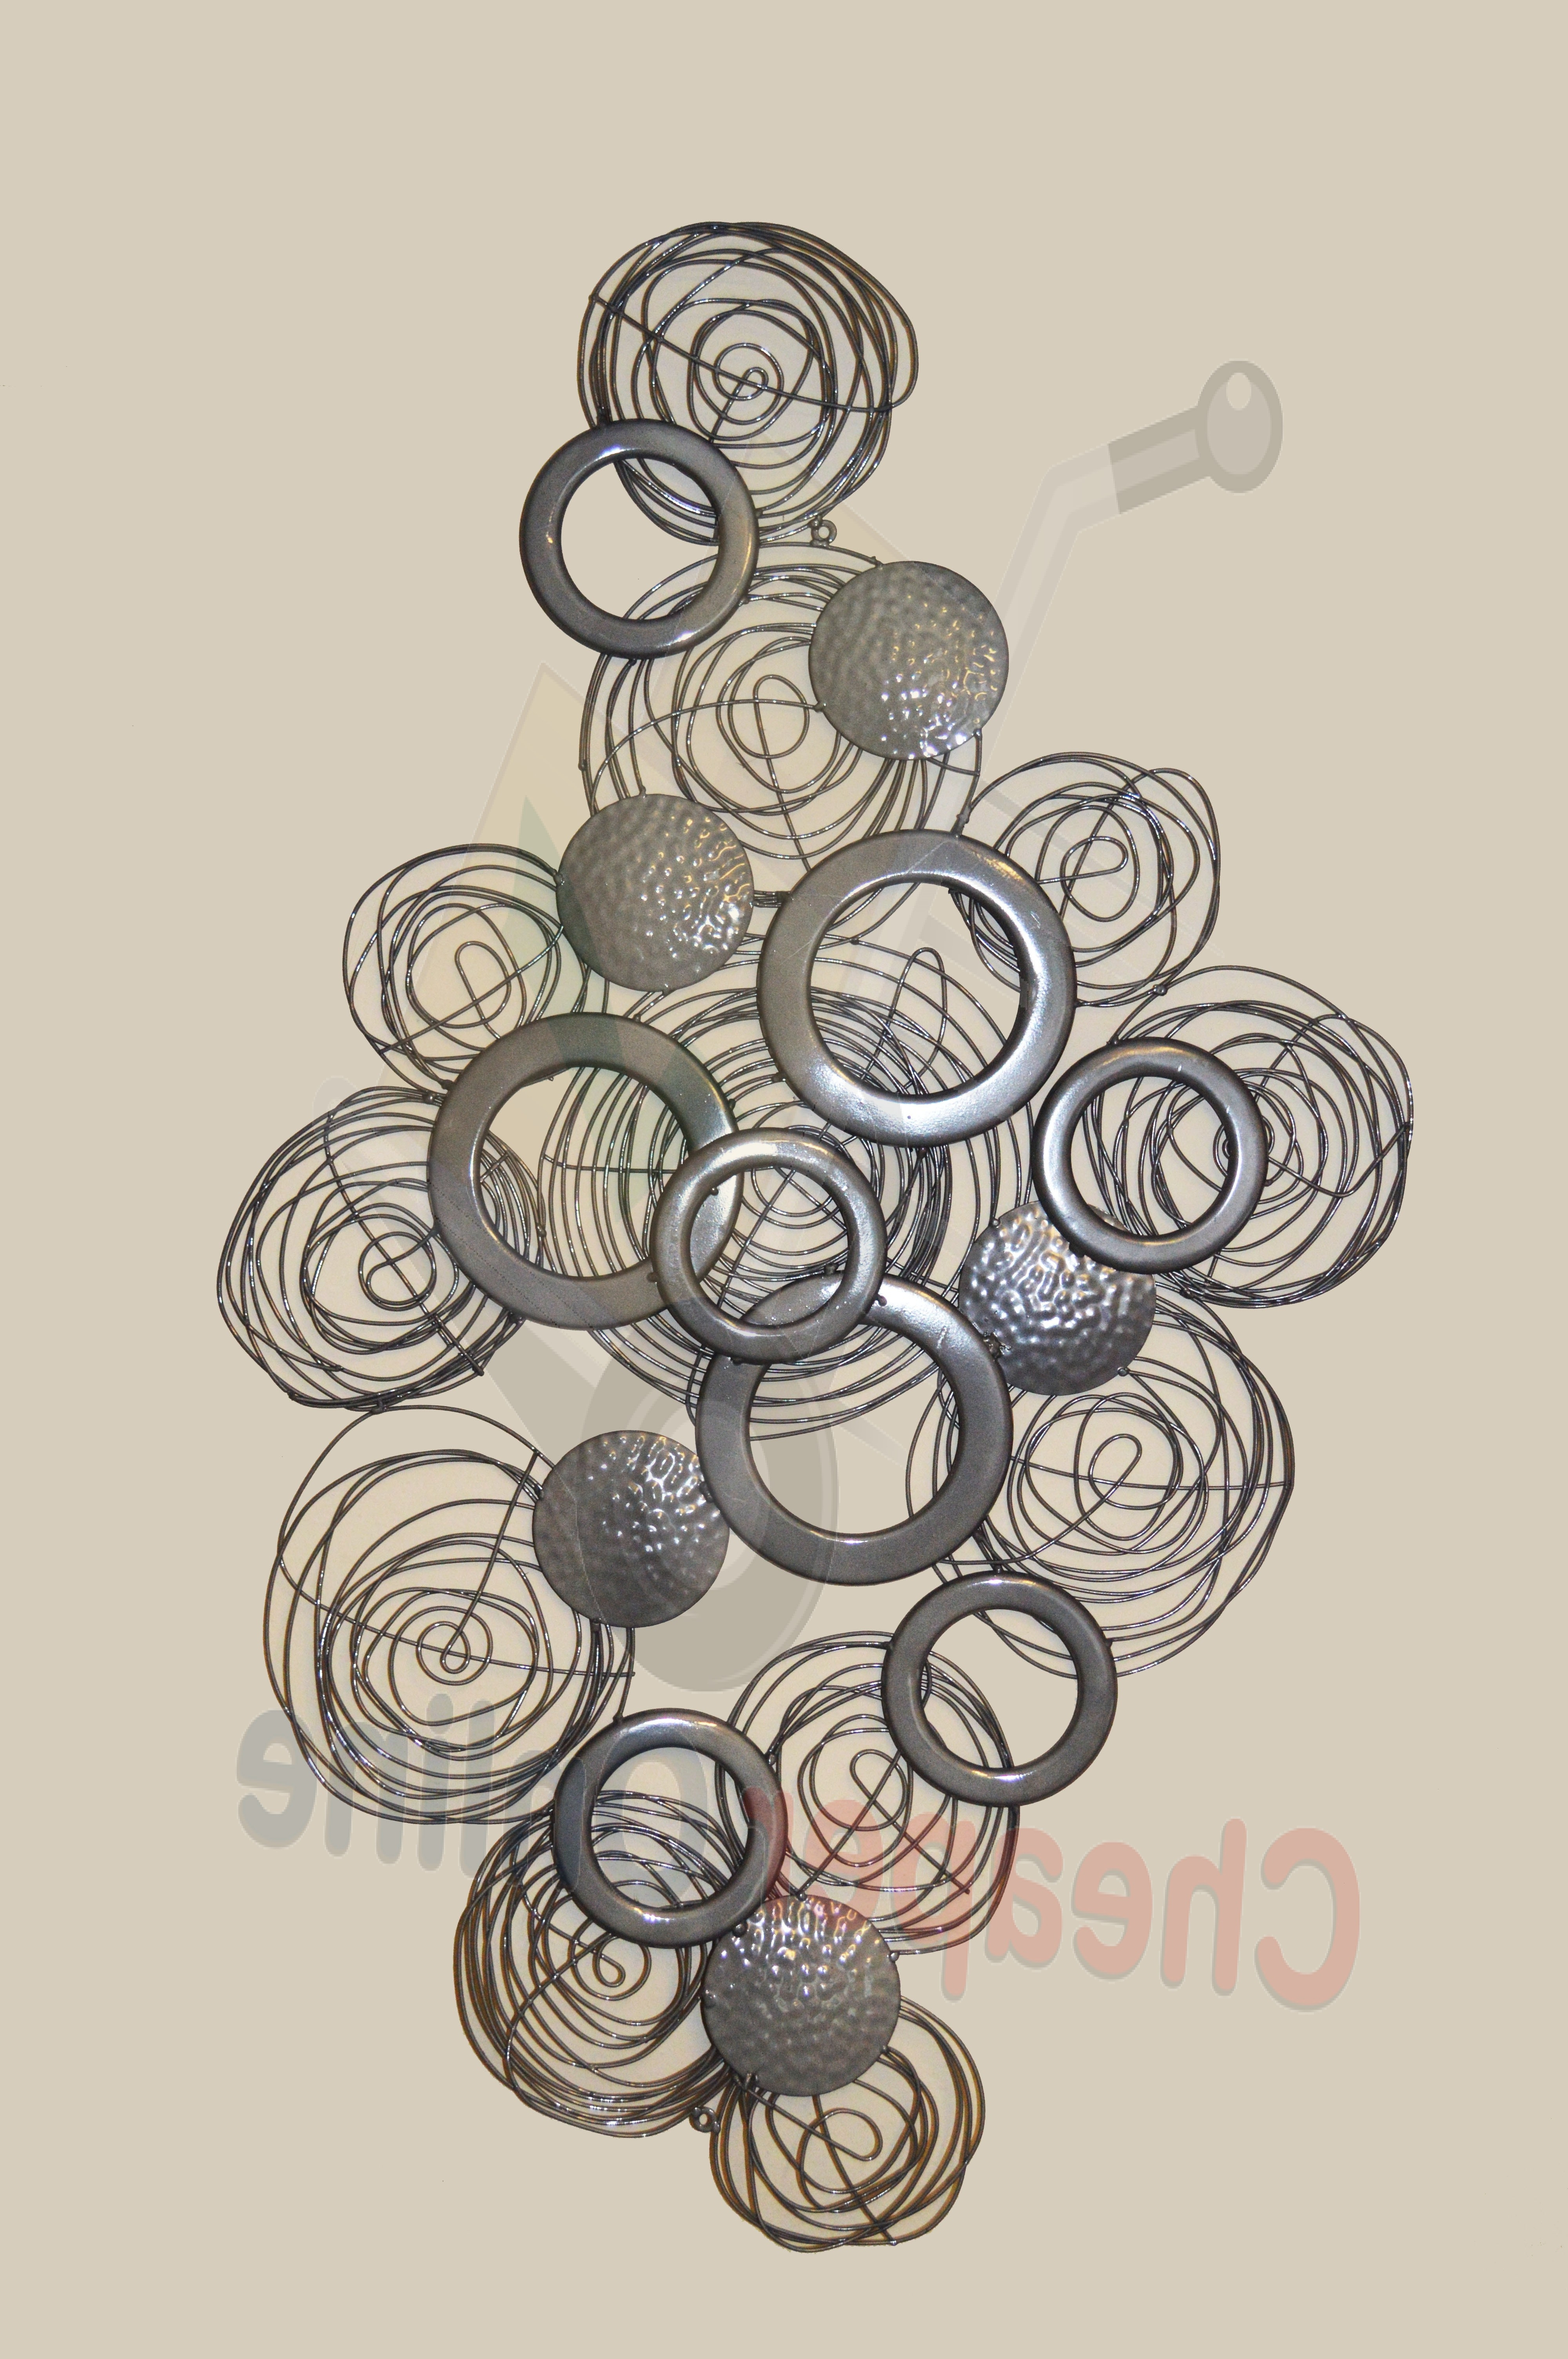 3D Metal Wall Art Intended For Latest Abstract Metal Wall Art Uk Decorative 3D Metal Circle Wall Art (View 12 of 15)